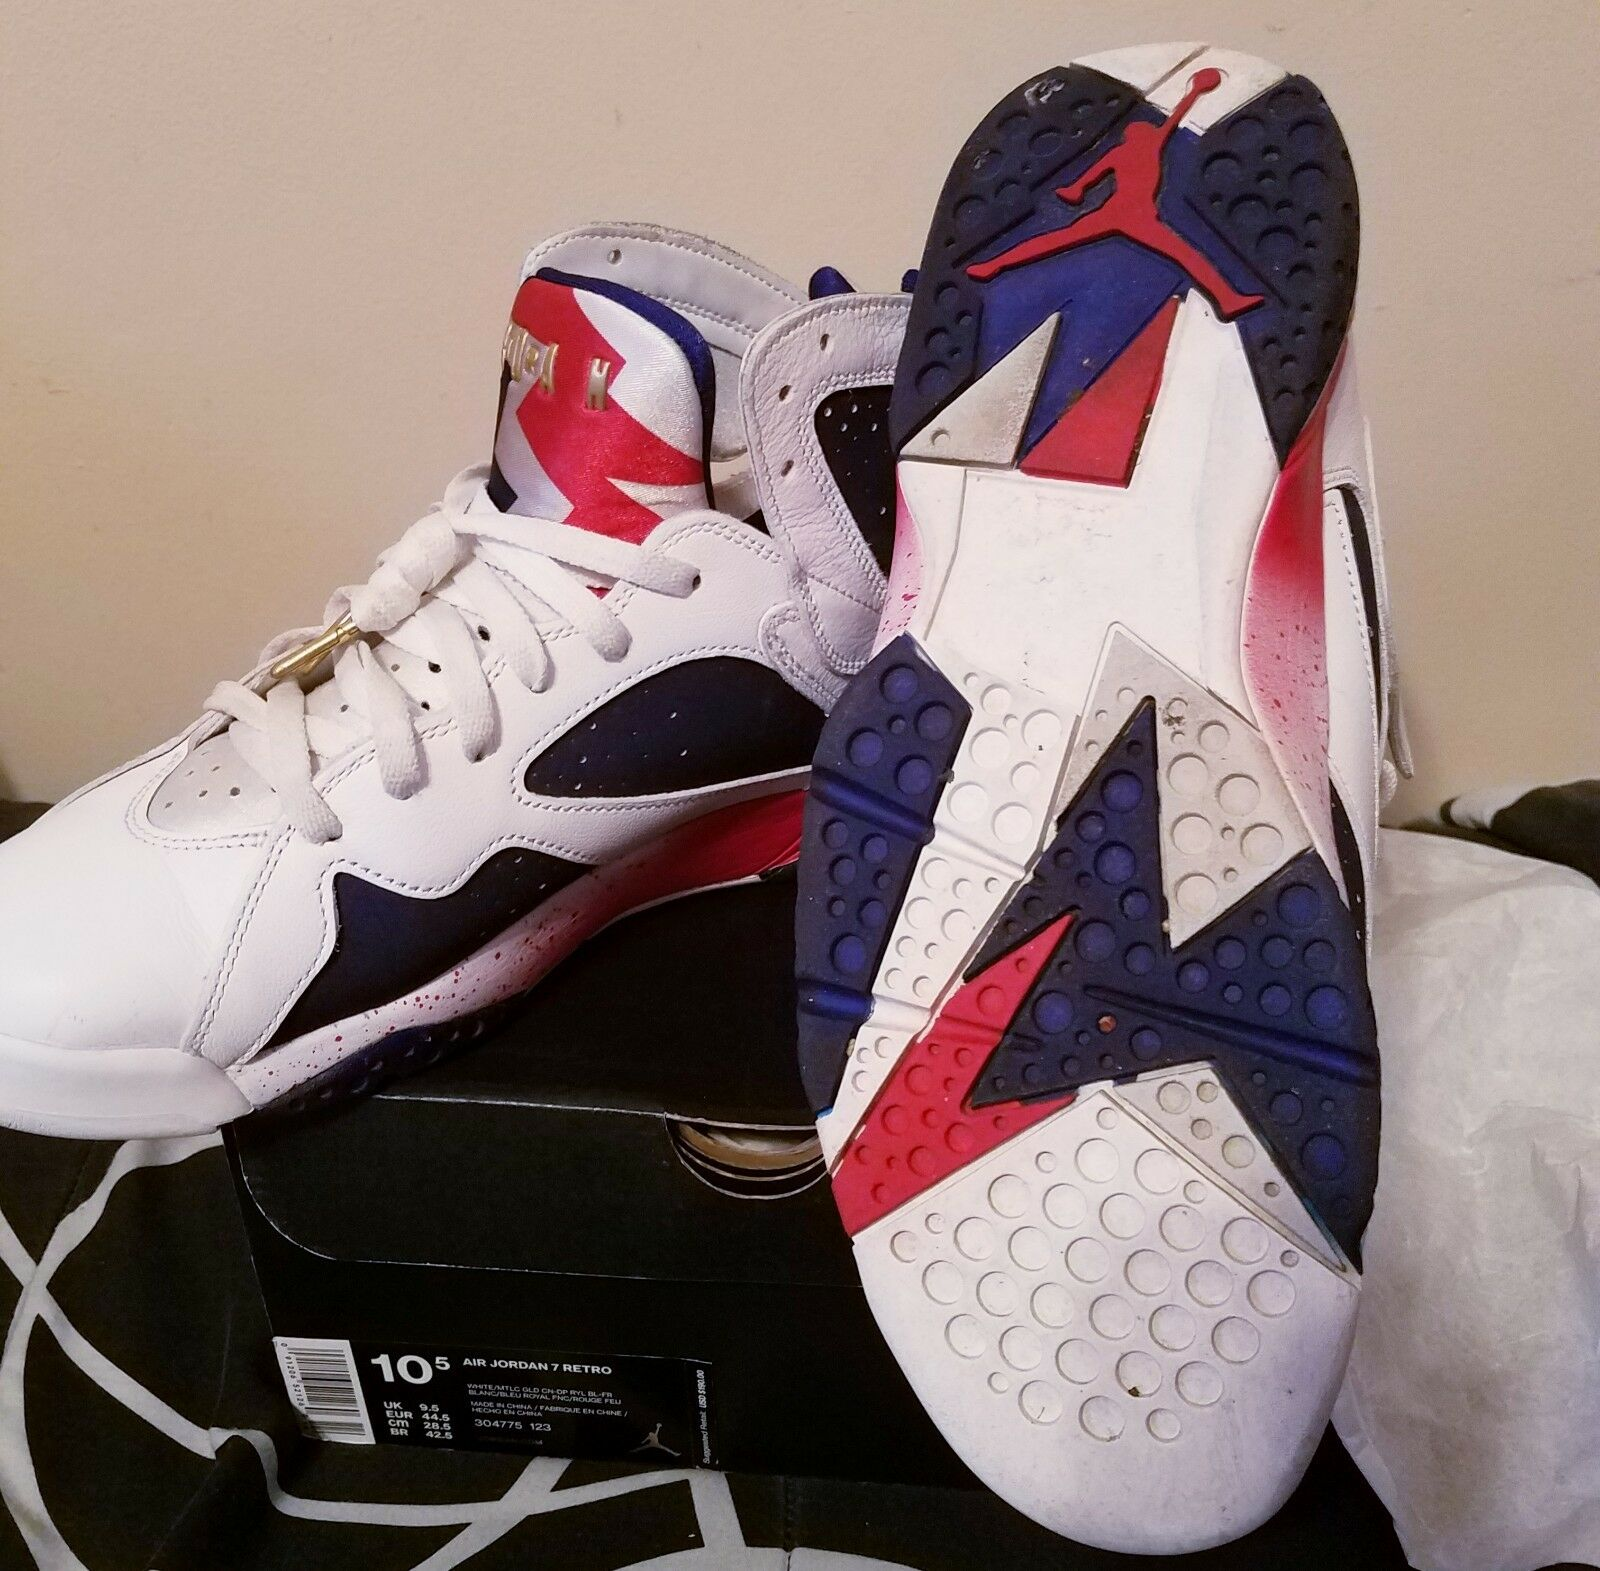 Air Jordan 7 Retro Red, White, and bluee